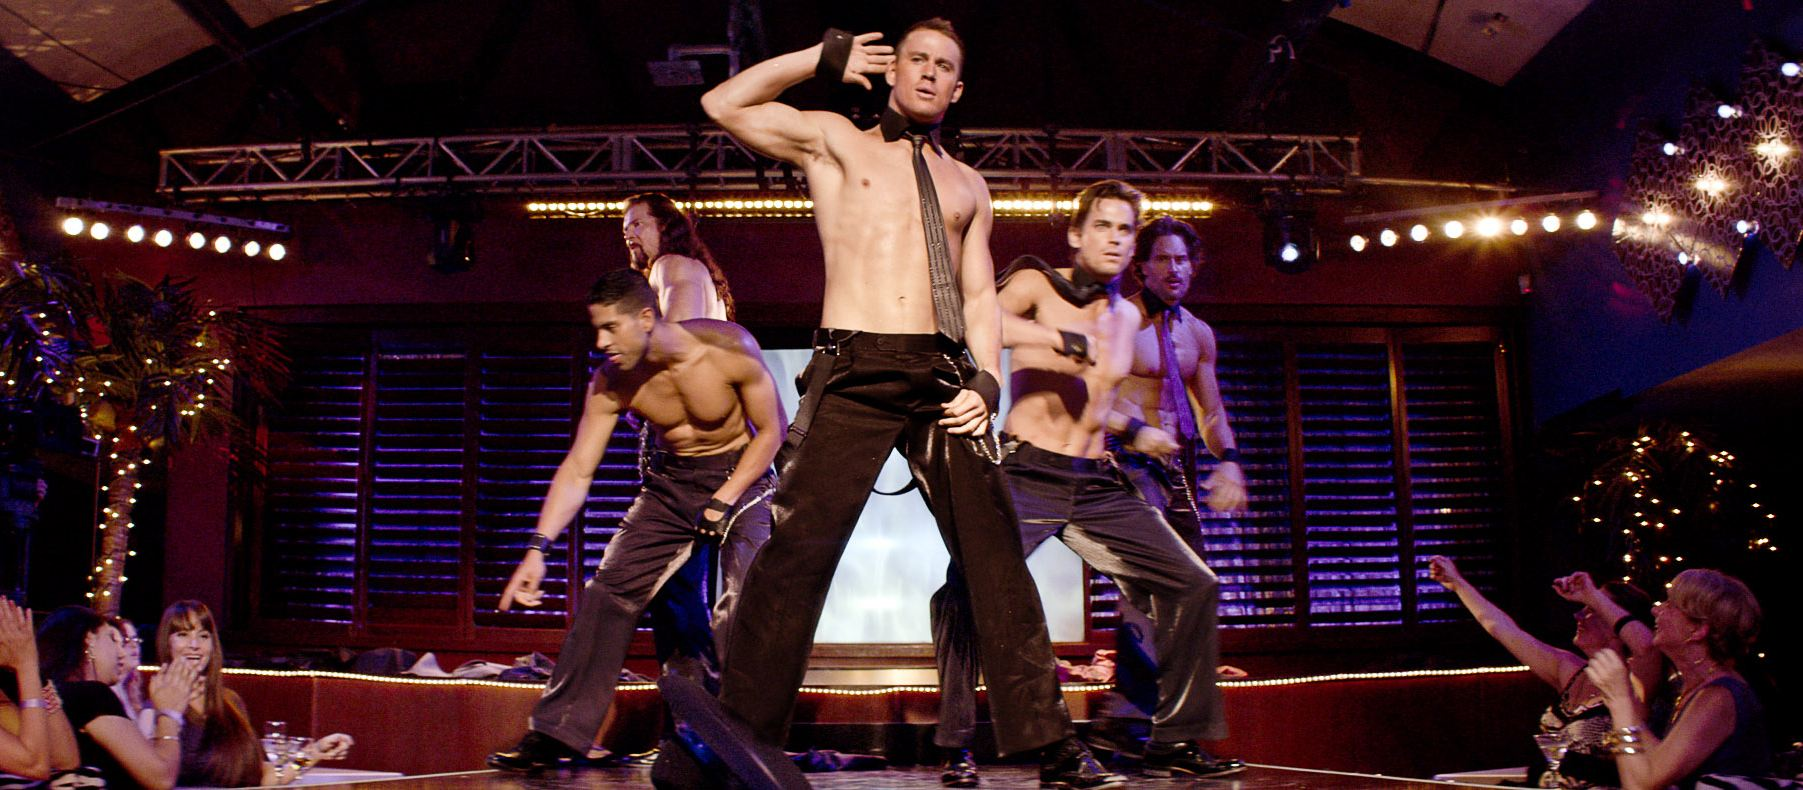 magic-mike-juin-17.JPG